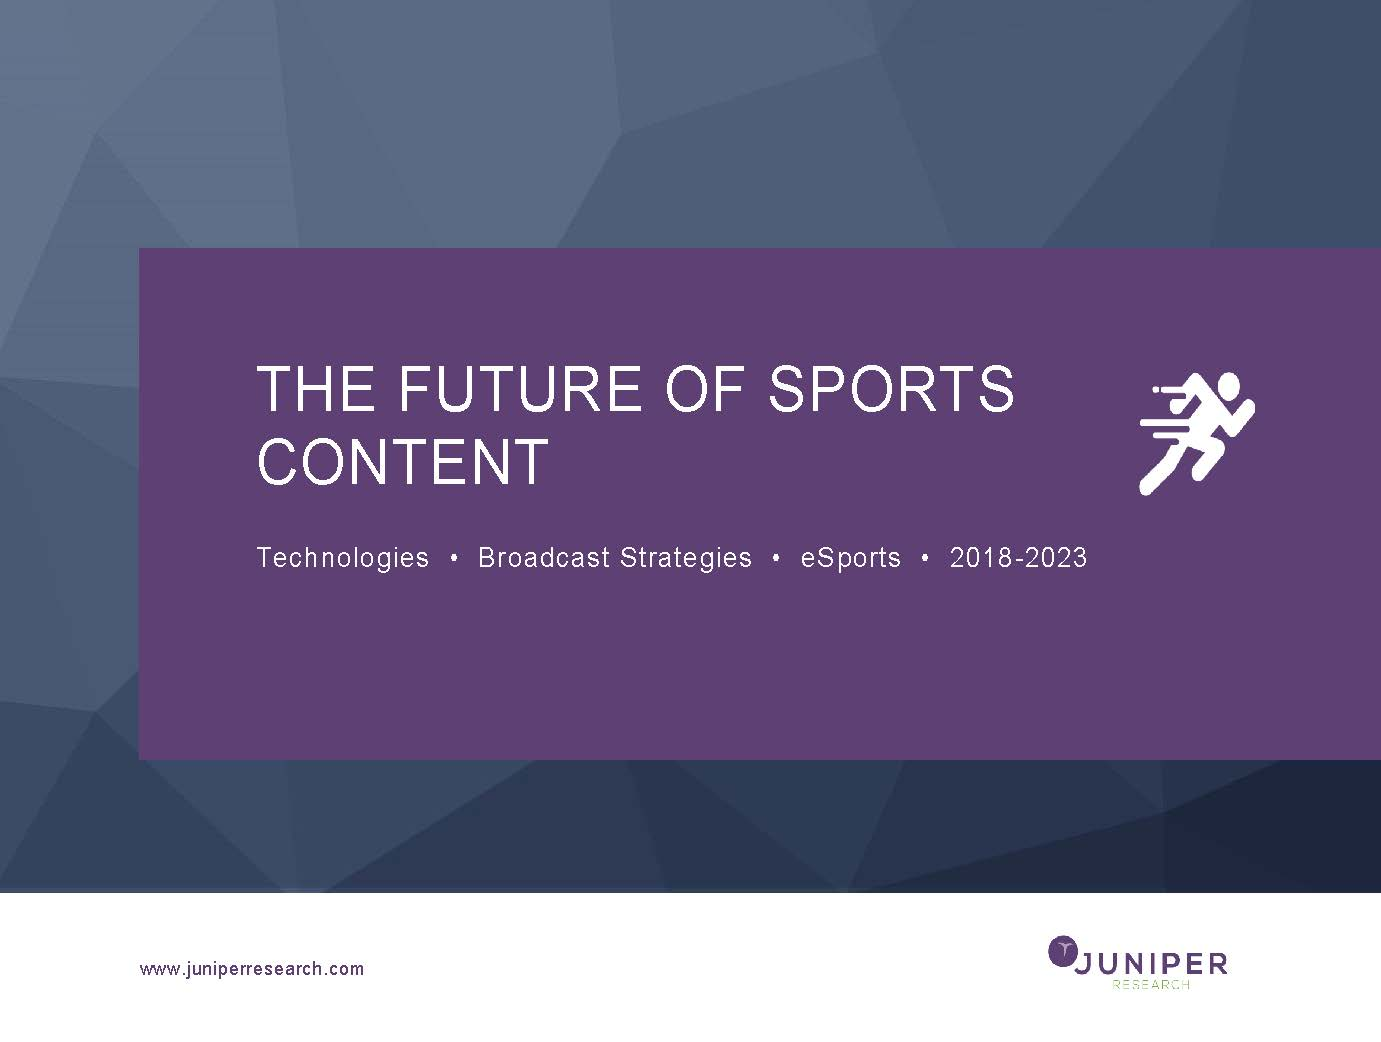 The Future of Sports Content: Technologies, Broadcast Strategies & eSports 2018-2023 Full Research Suite